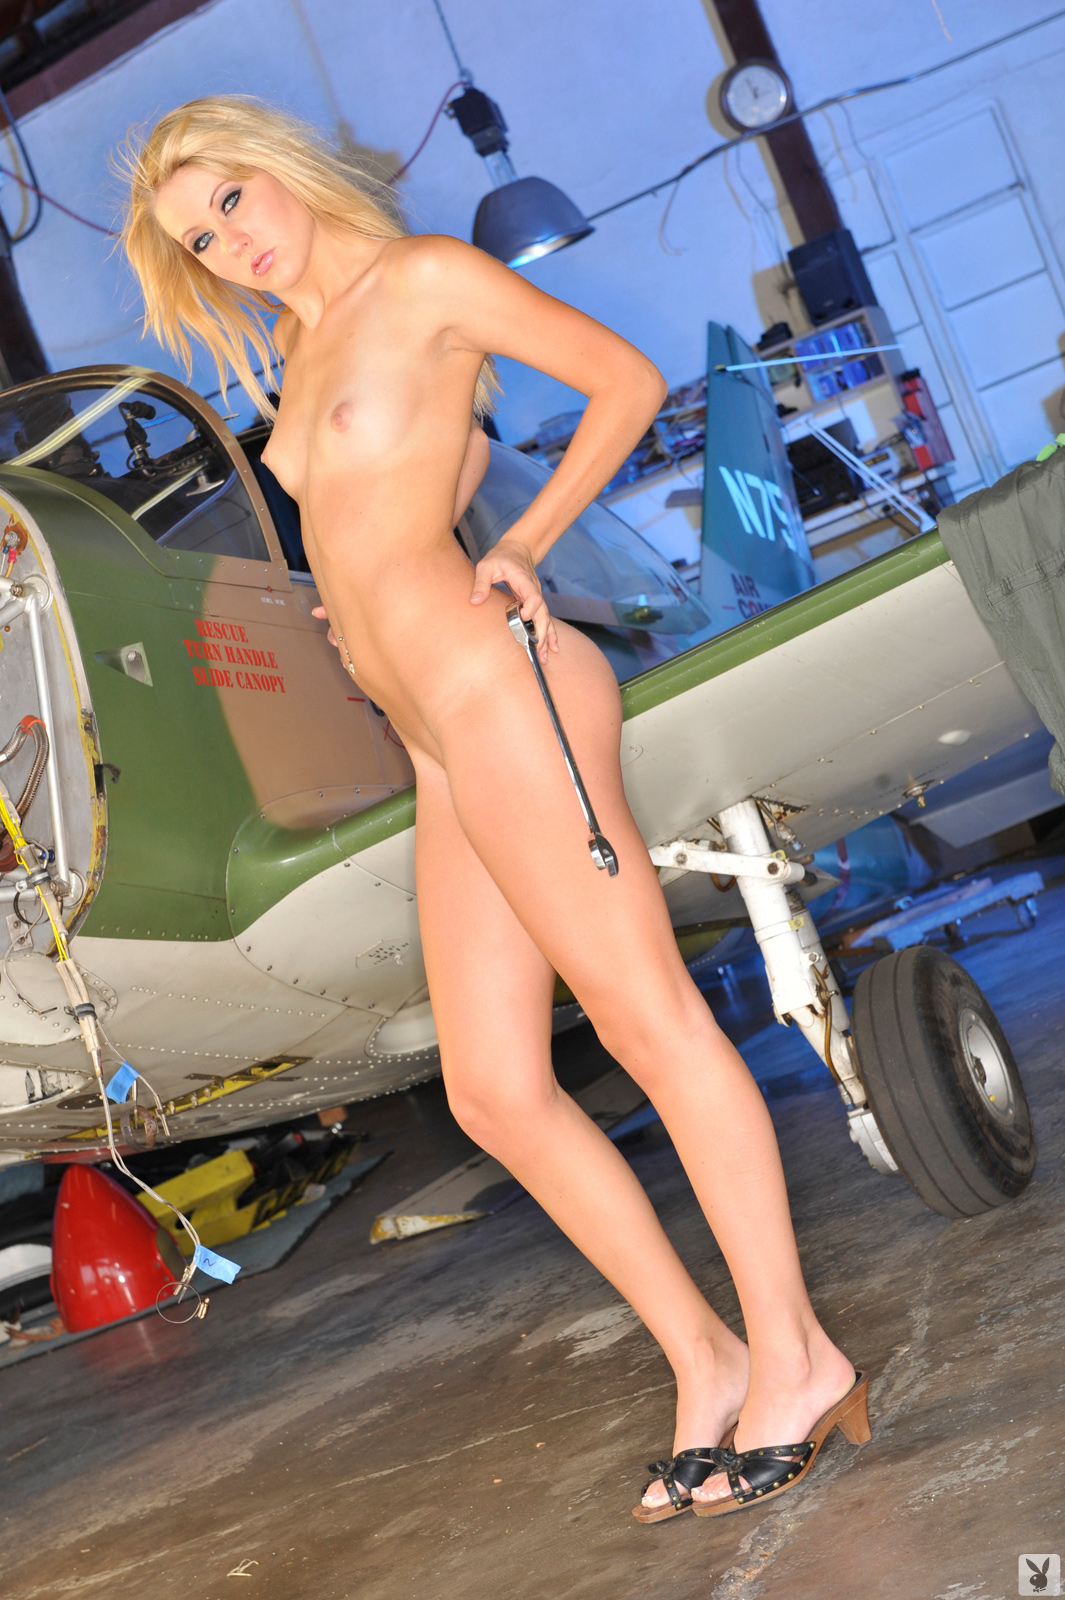 playboy-badass-nude-episode-01-nicole-hollister-fighter-planes-05